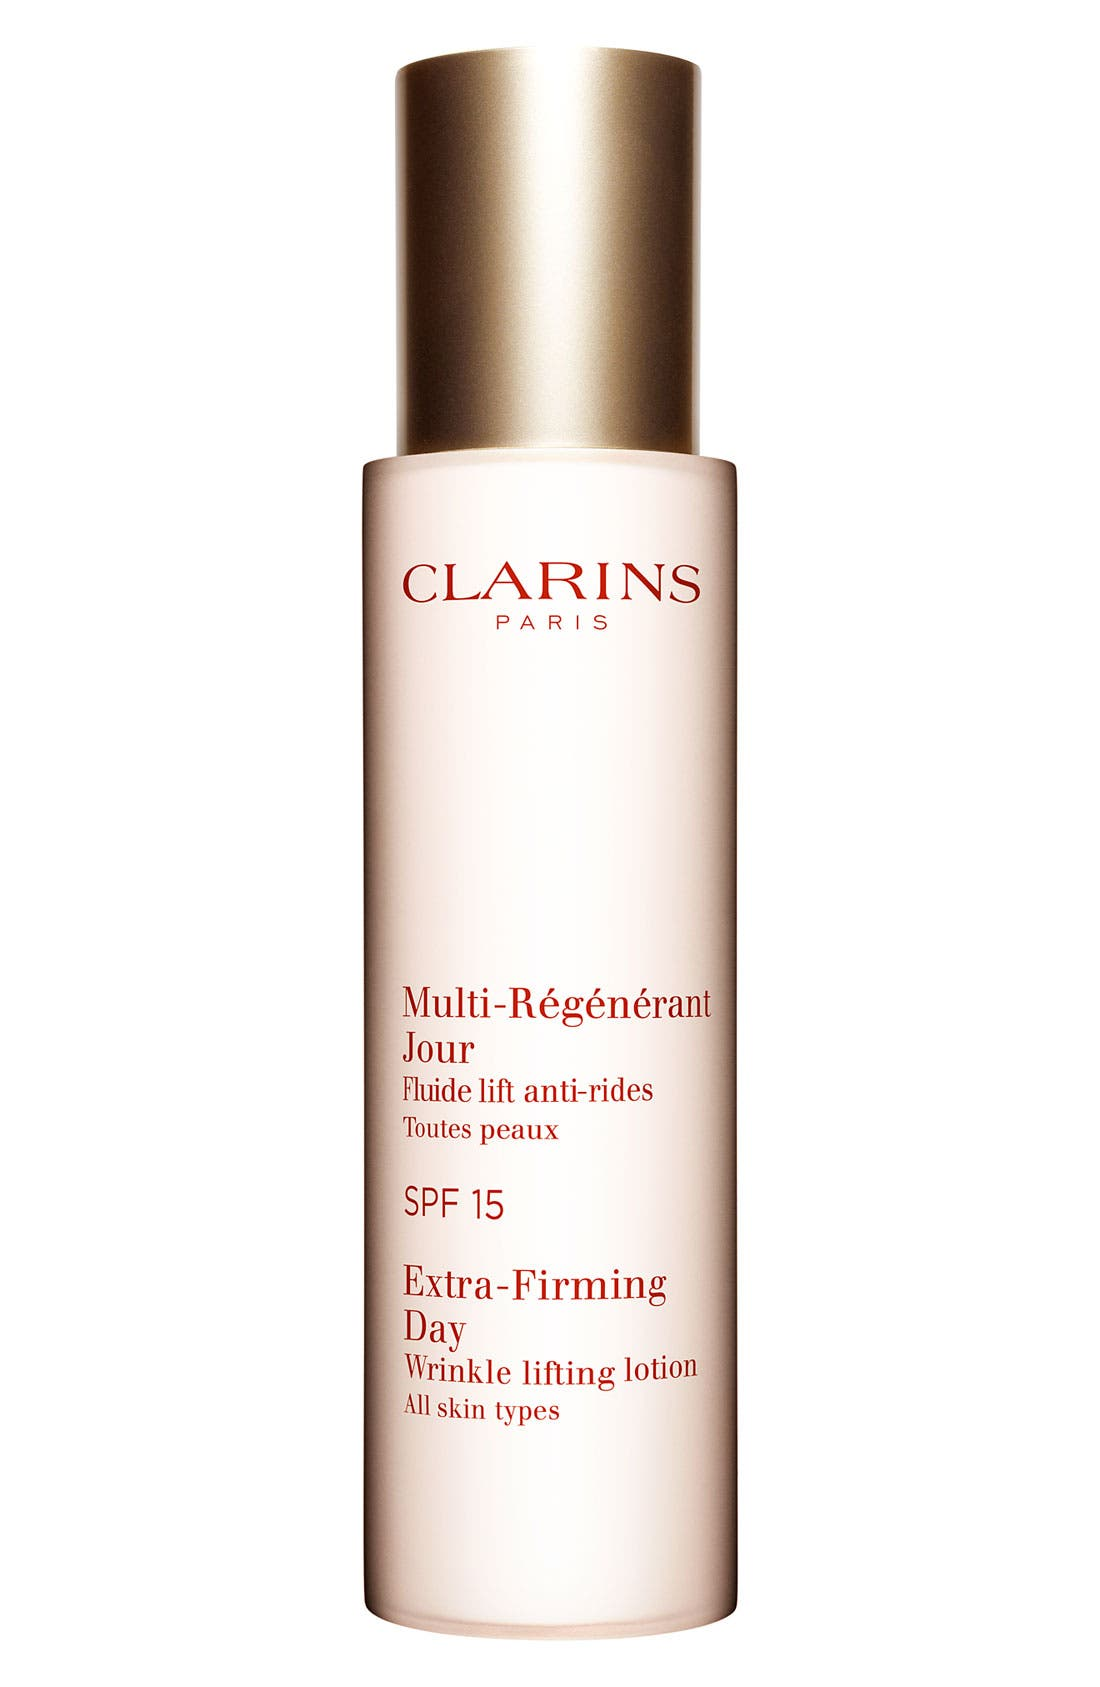 Clarins 'Extra-Firming' Day Wrinkle Lifting Lotion SPF 15